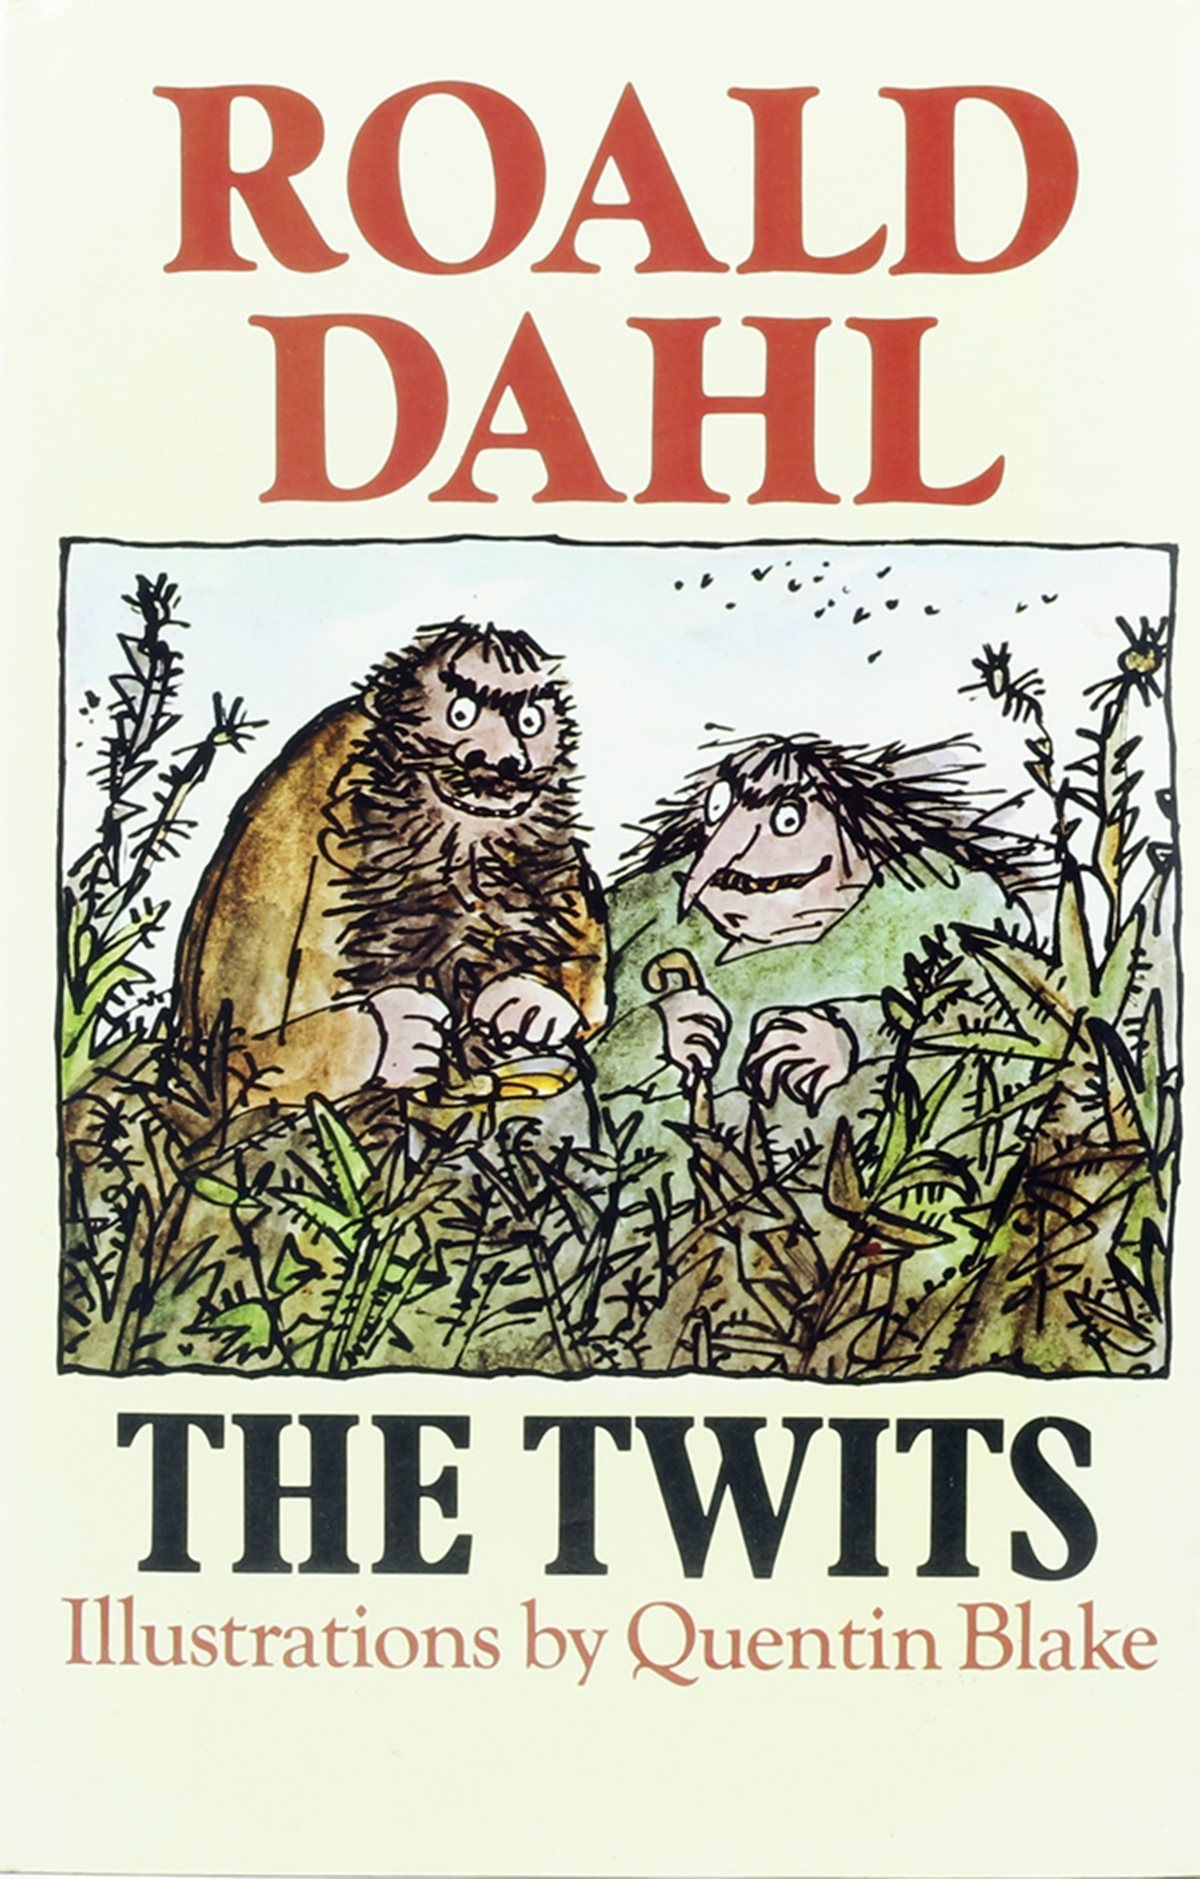 10 17 12 More Childhood Books You've Probably Forgotten About